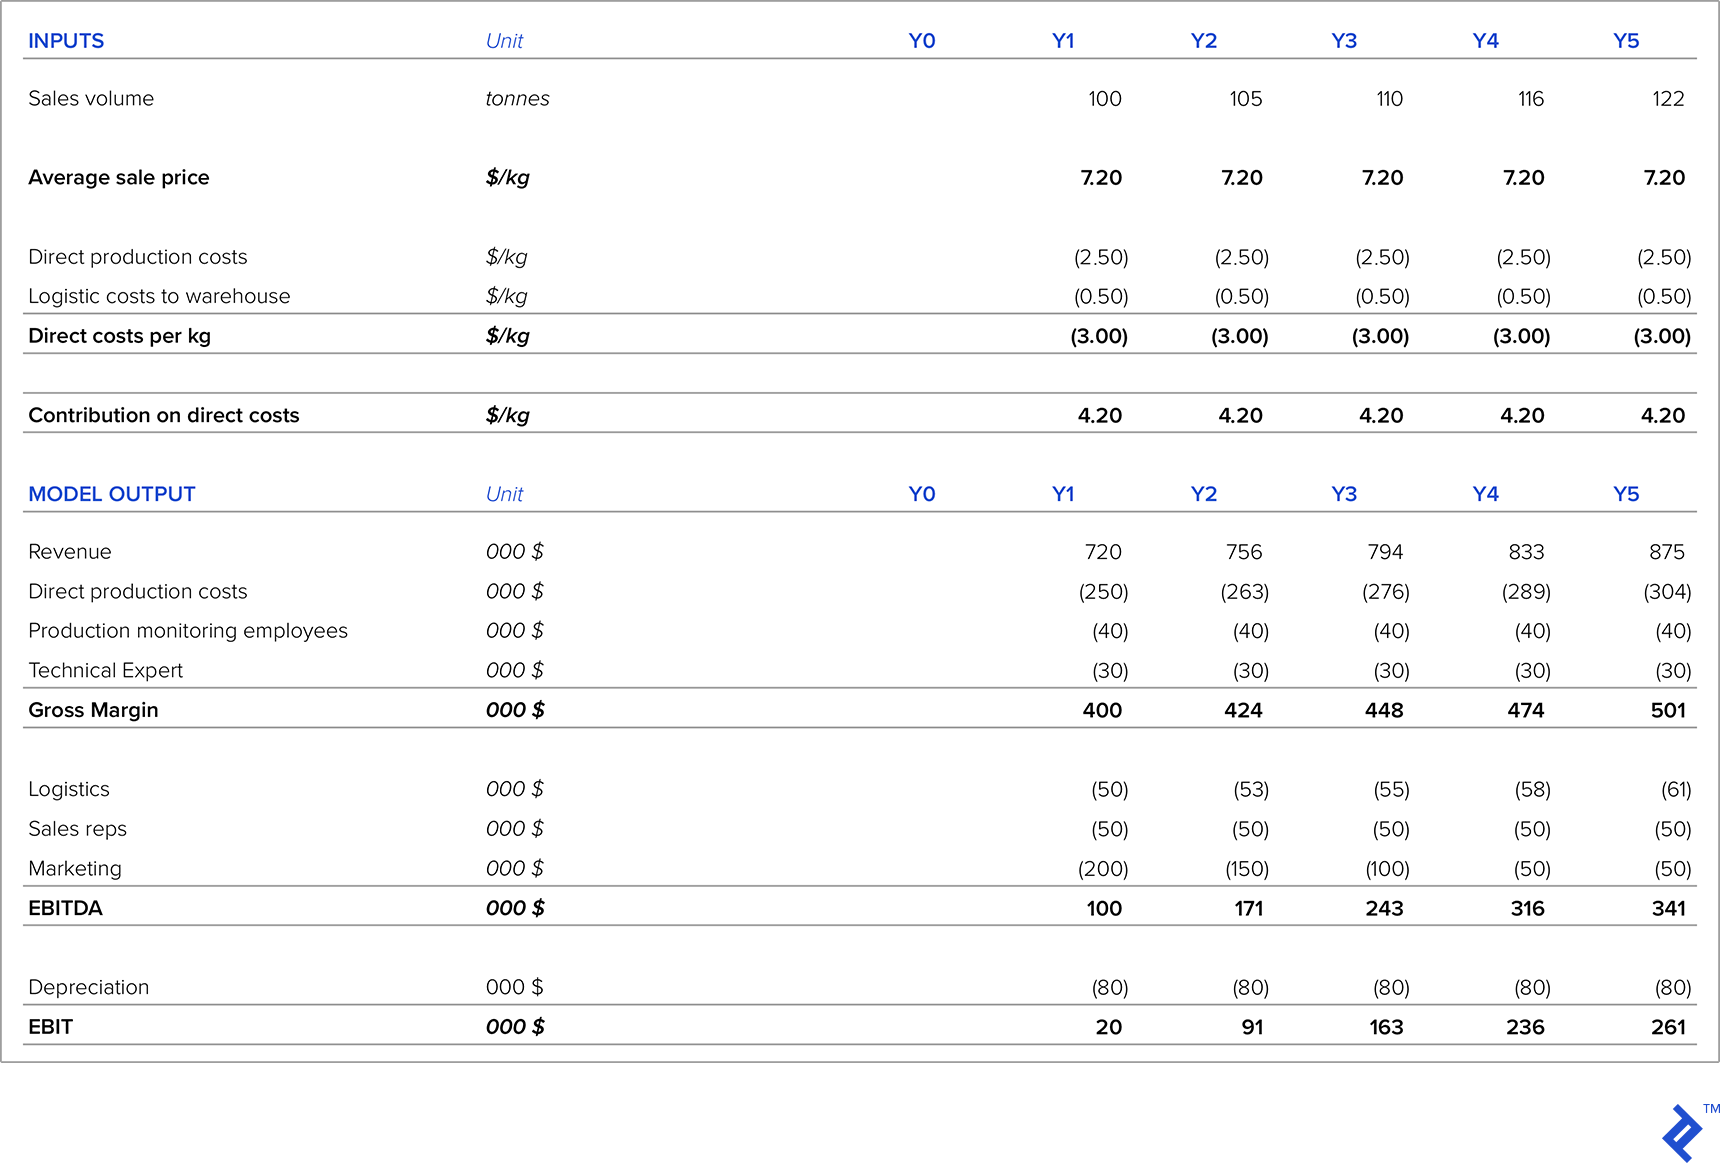 Table 4: Pricing Analysis for New Product Launch